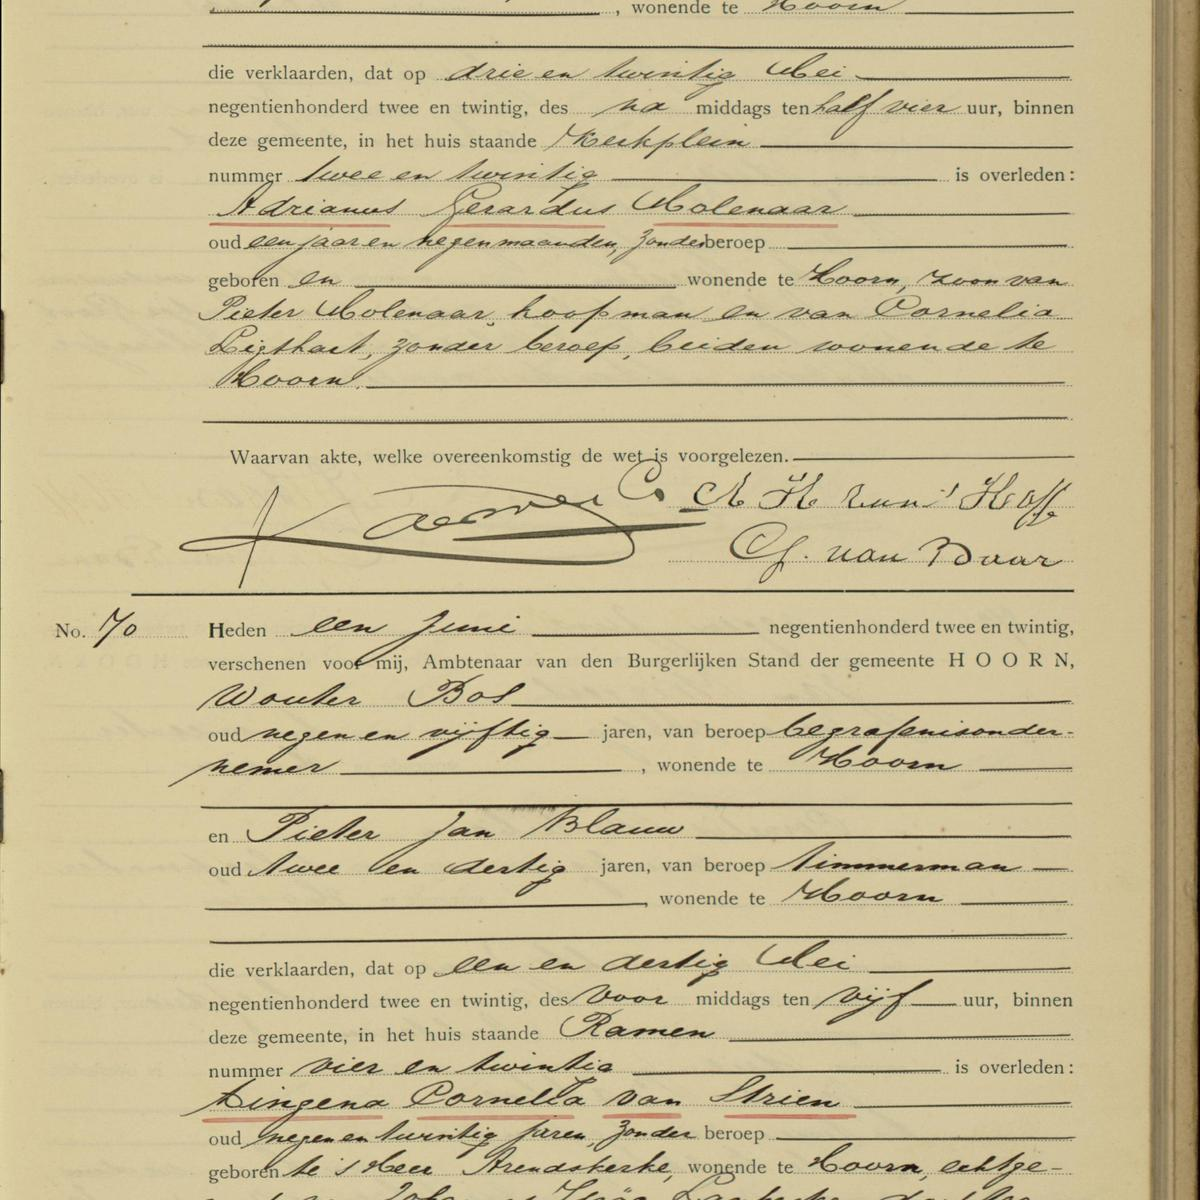 Civil registry of deaths, Hoorn, 1922, records 69-70